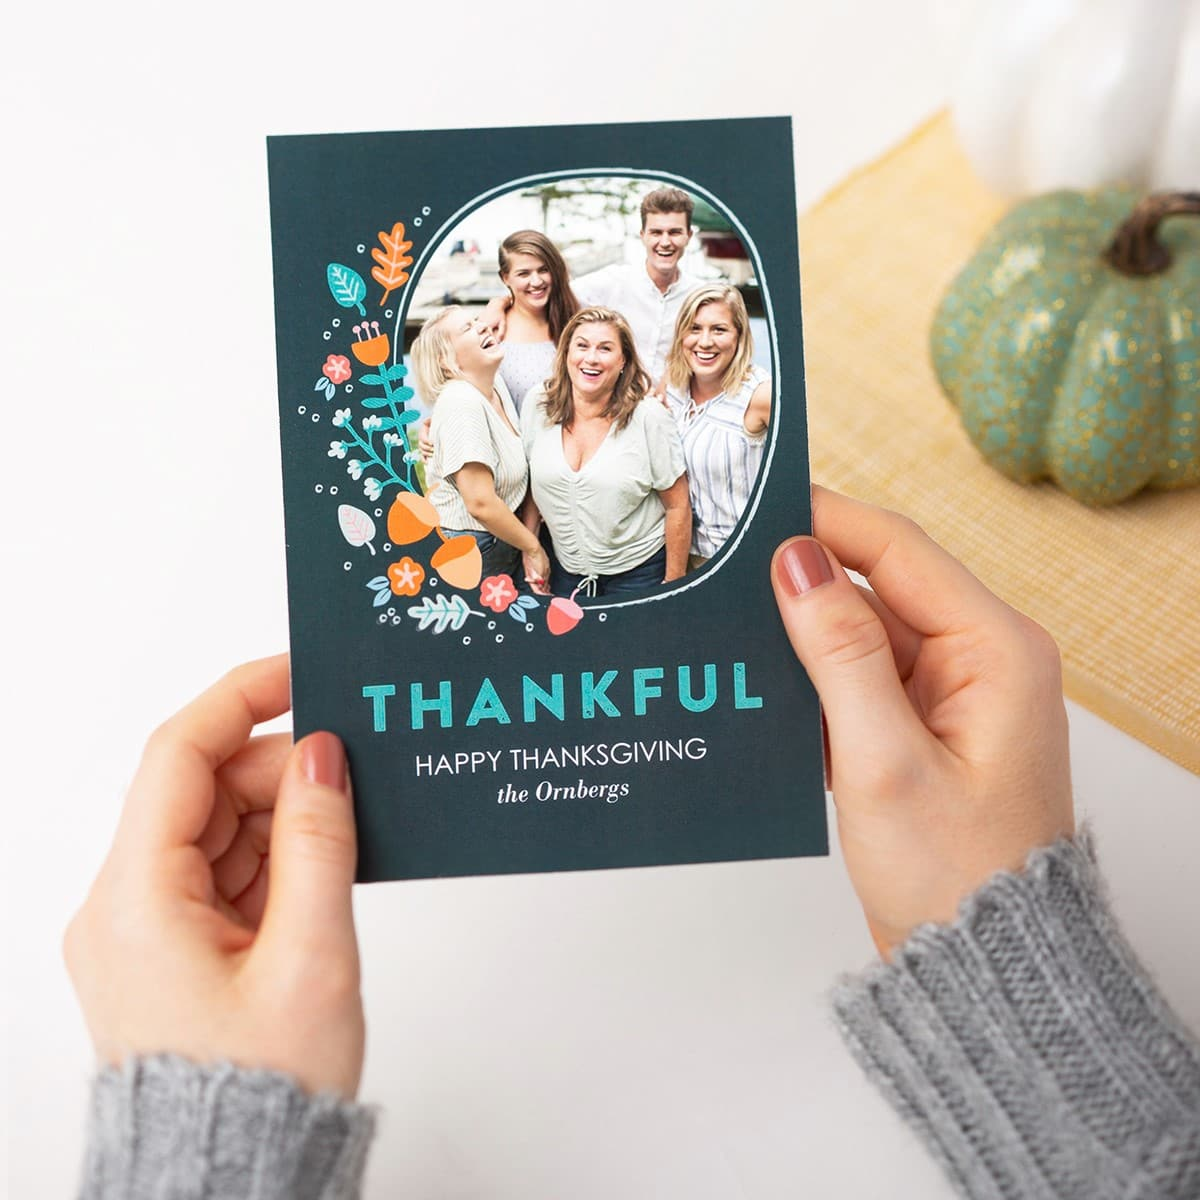 walgreens photo coupon codes holding photo card in hands